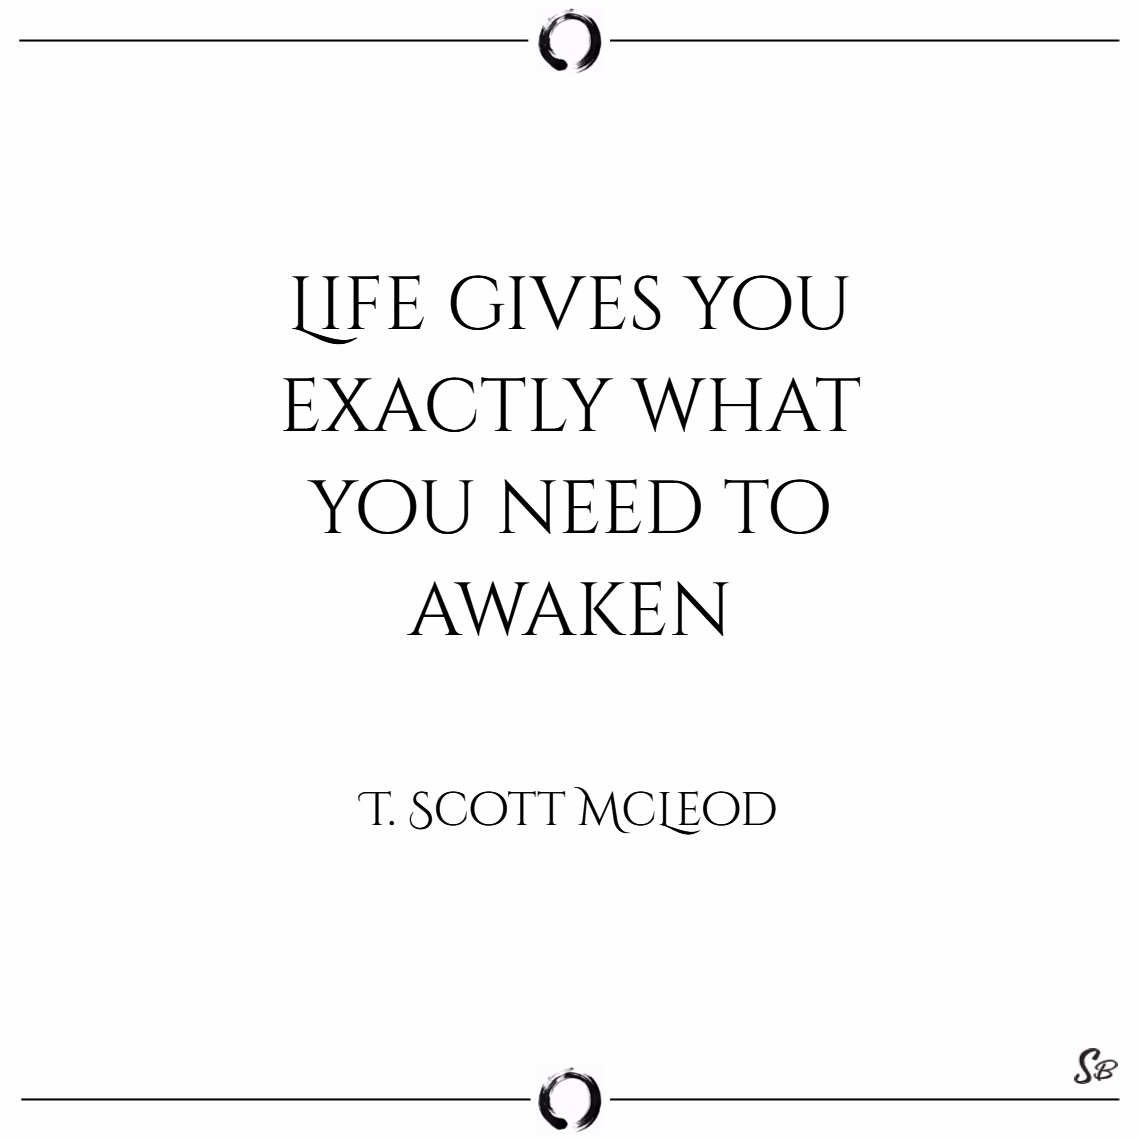 Life gives you exactly what you need to awaken. – t. scott mcleod